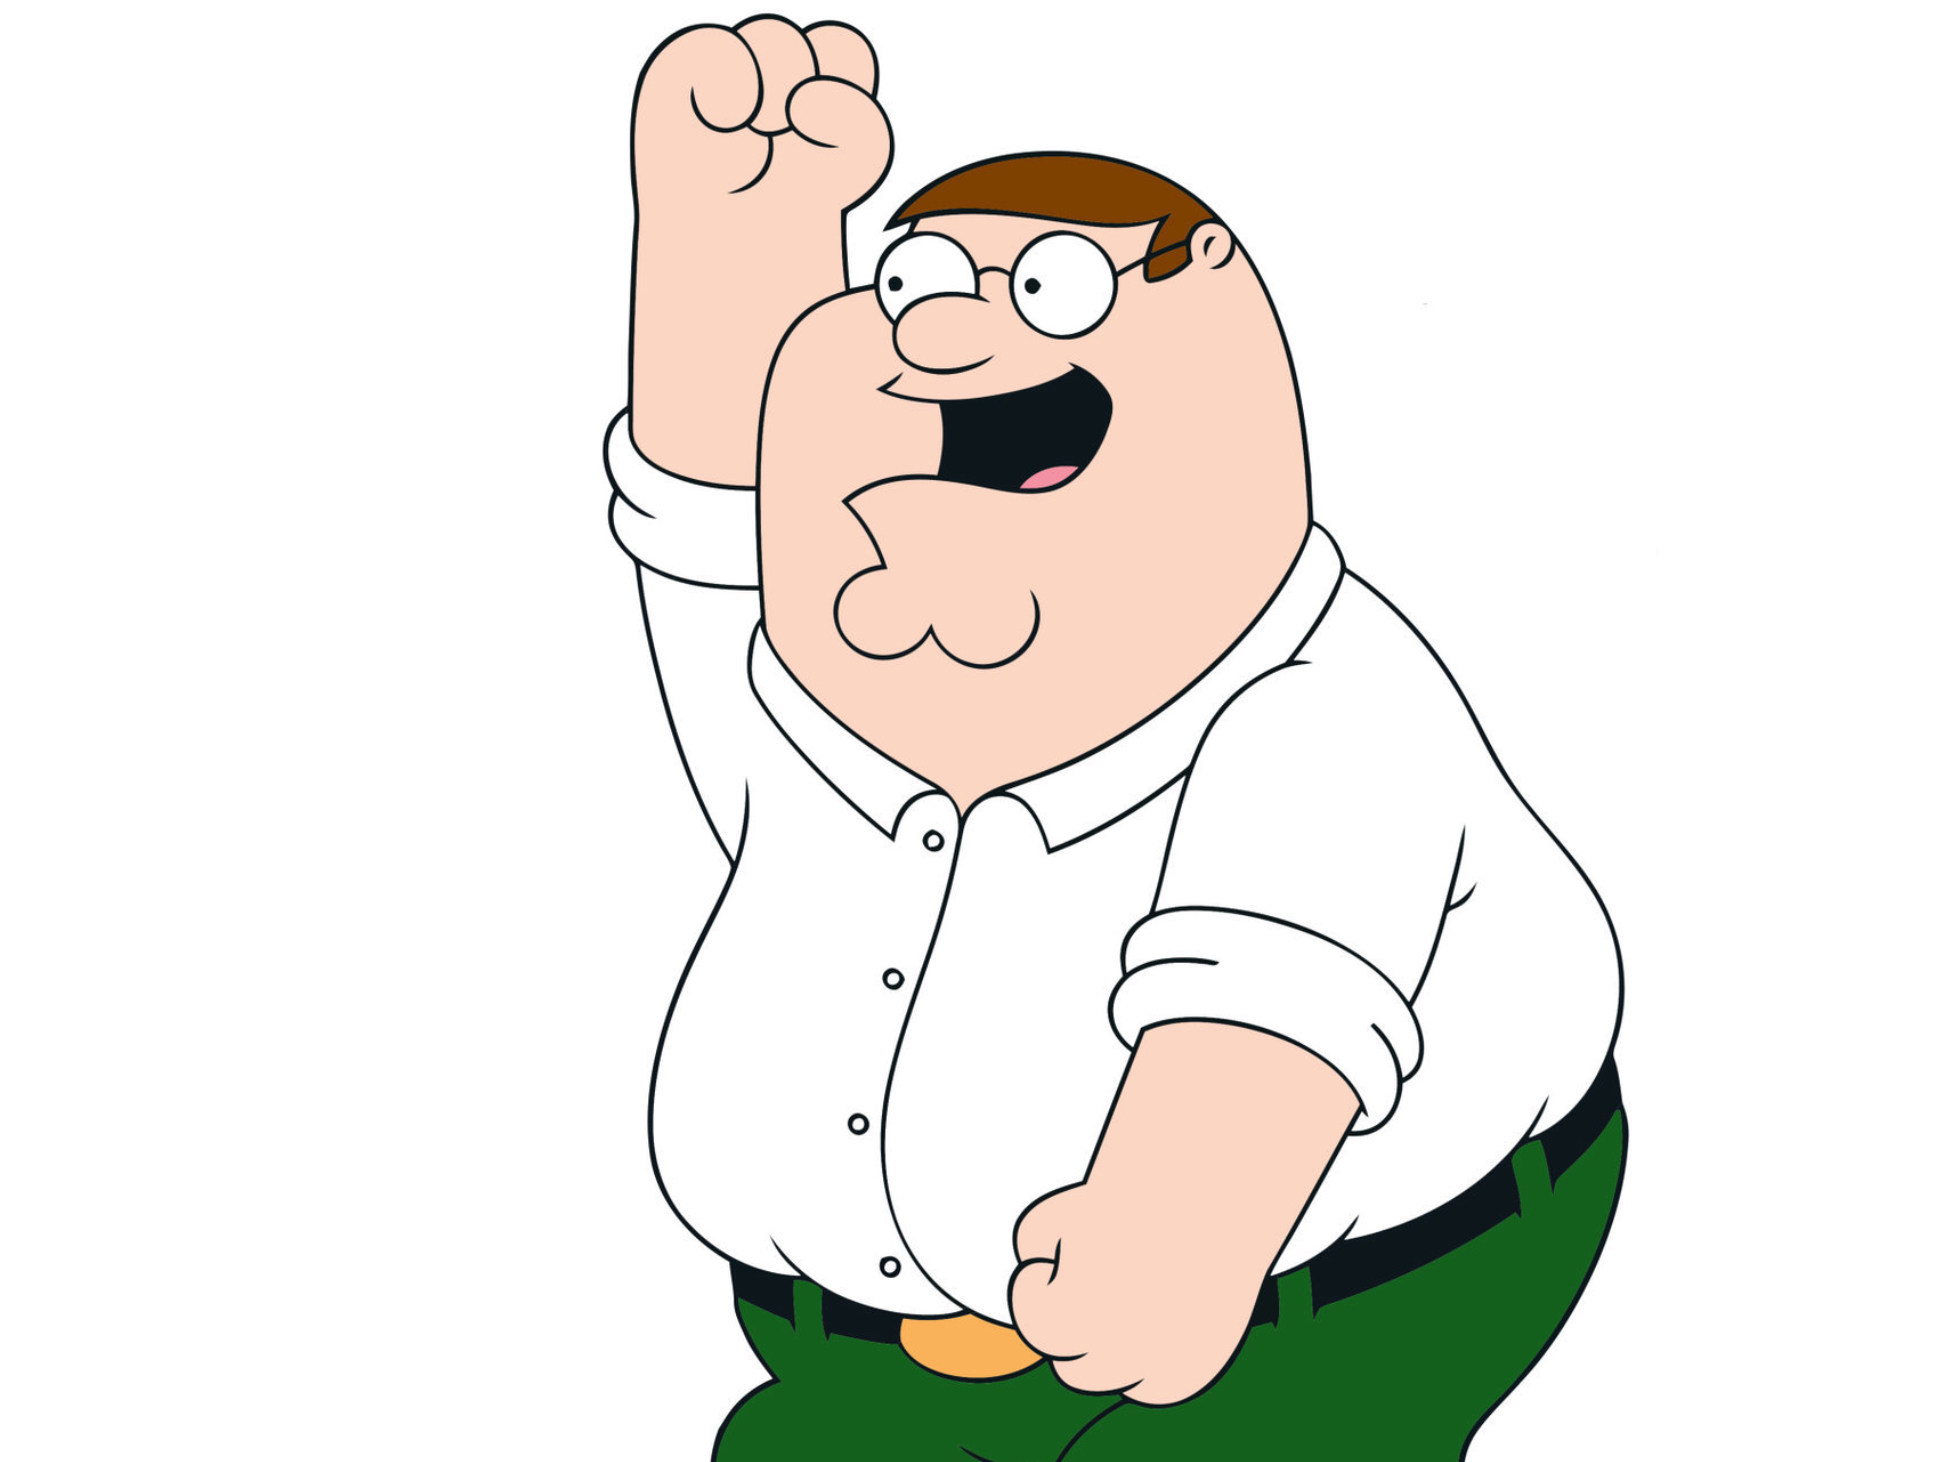 peter griffin cartoon characters wiki fandom peter griffin cartoon characters wiki